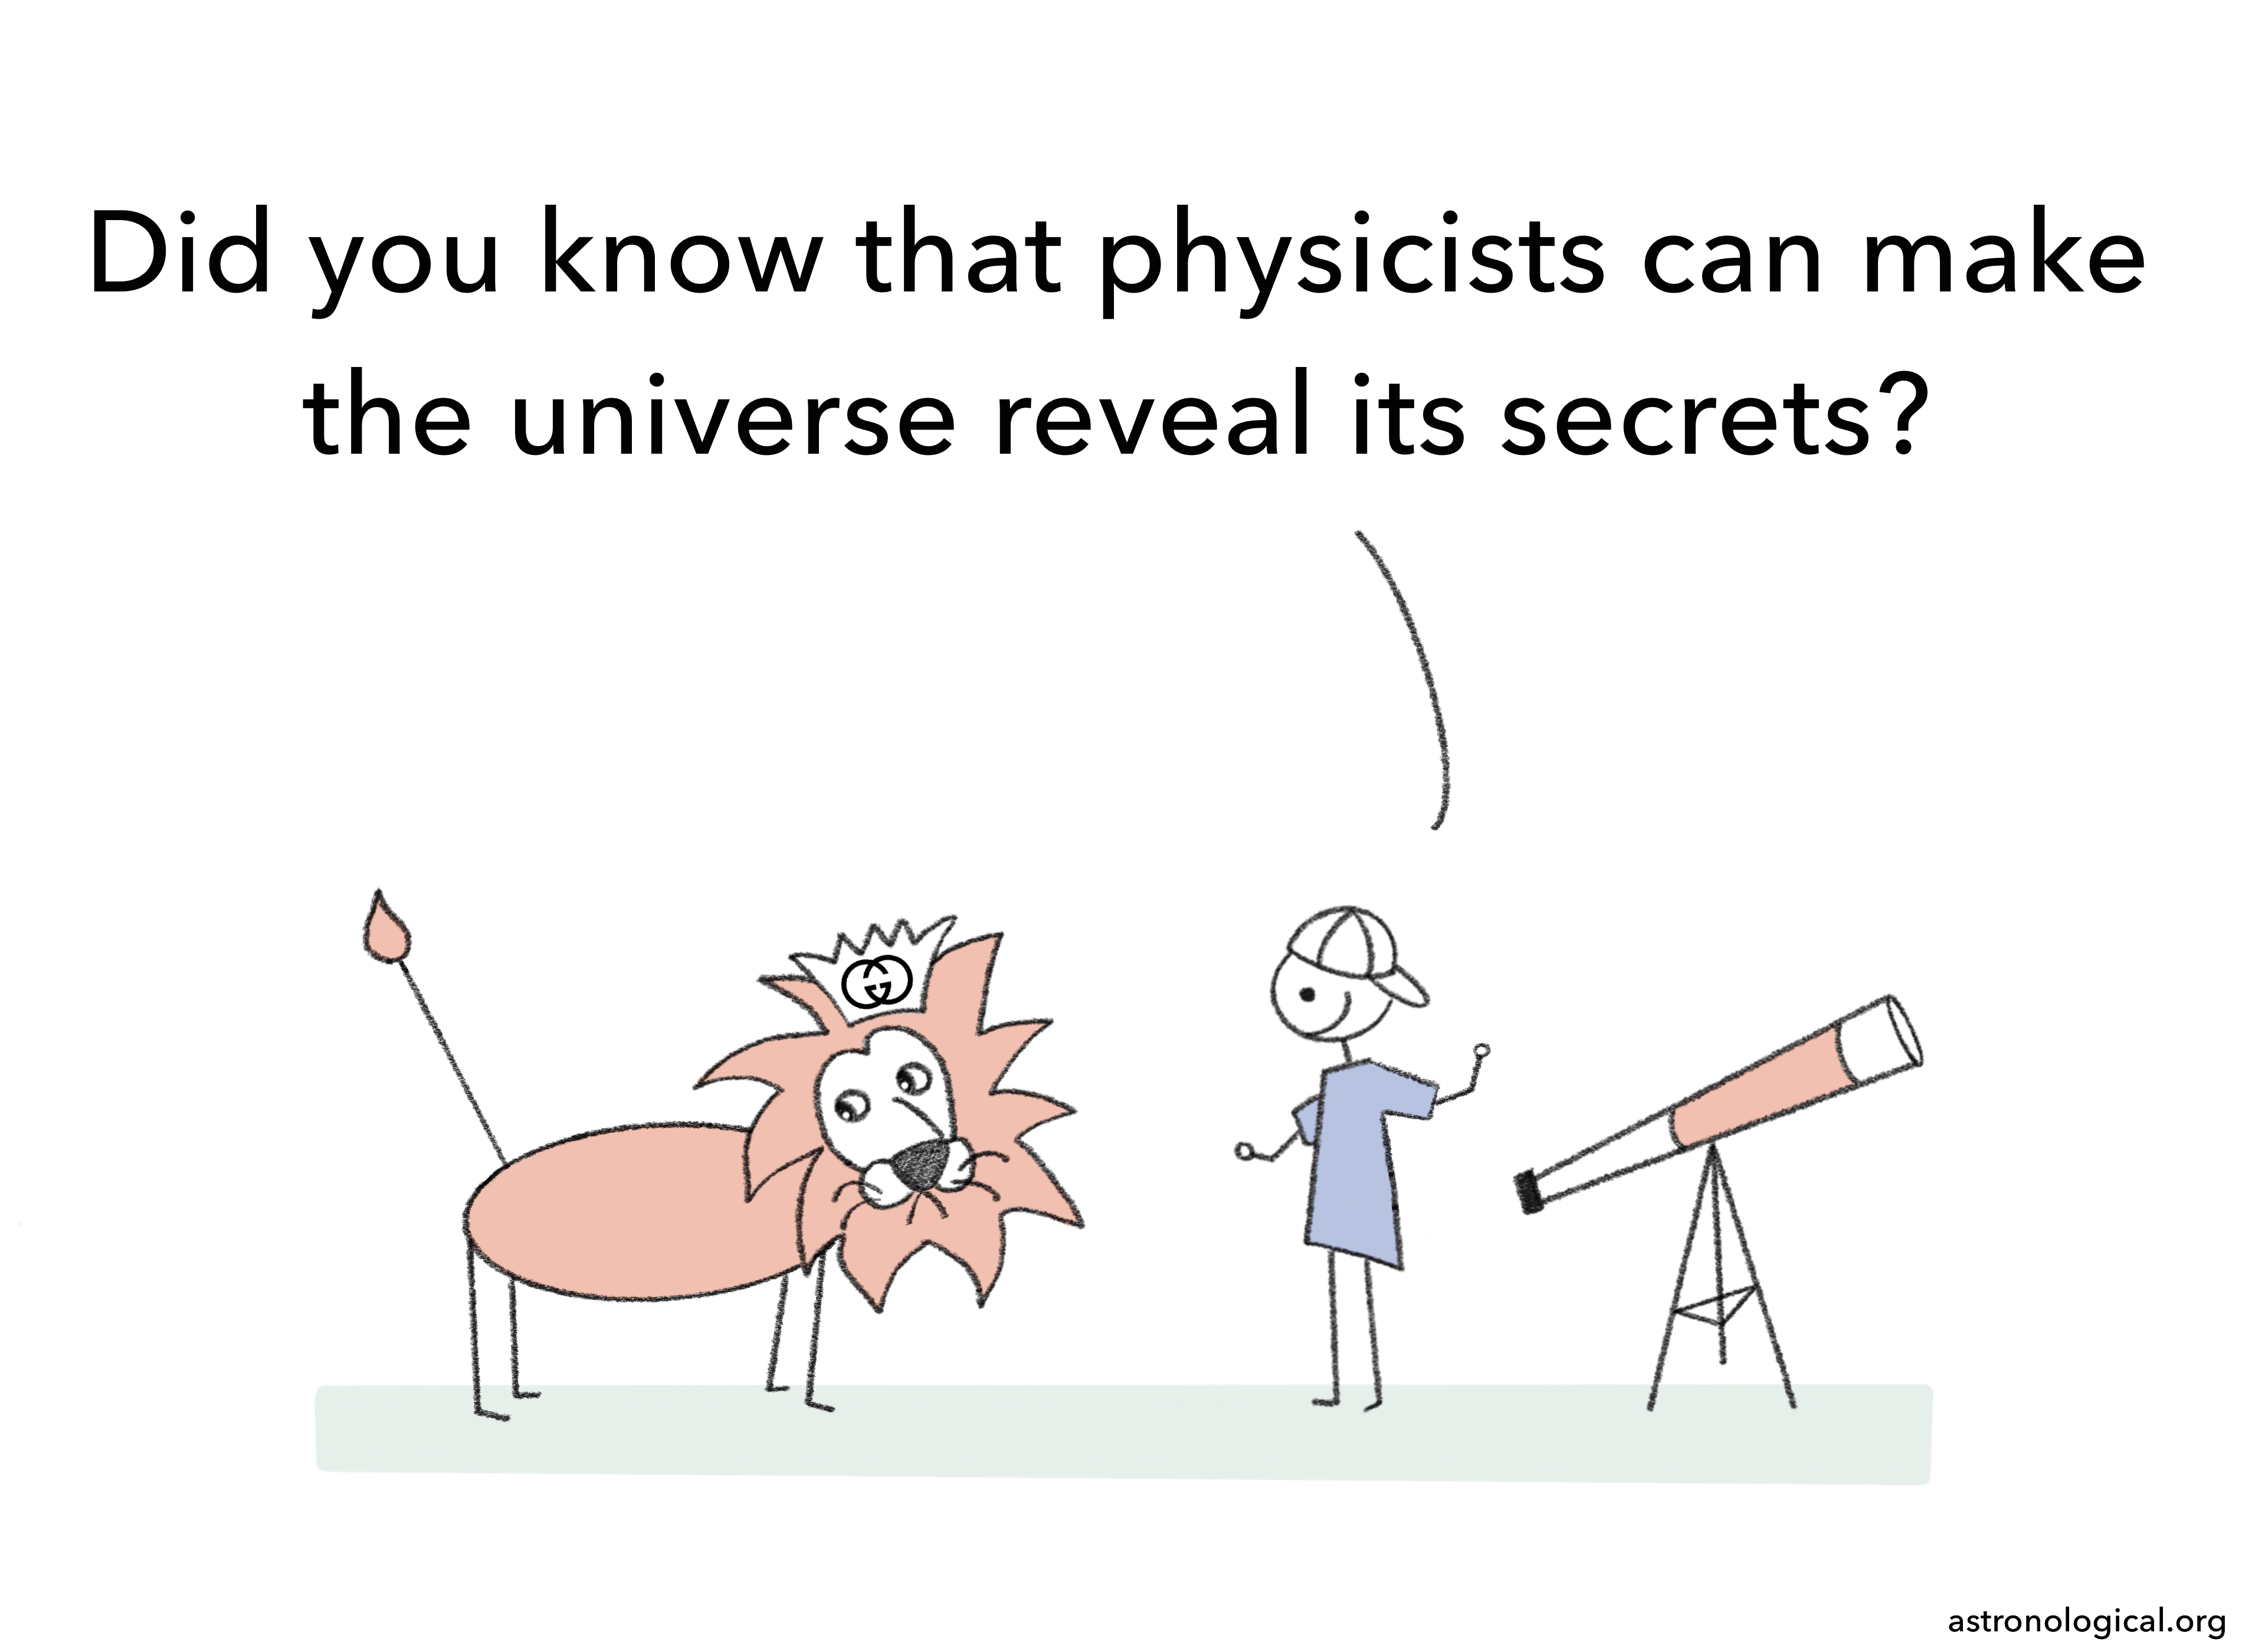 The scientist says: Did you know that physicists can make the universe reveal its secrets? The lion looks a bit confused and awkward.